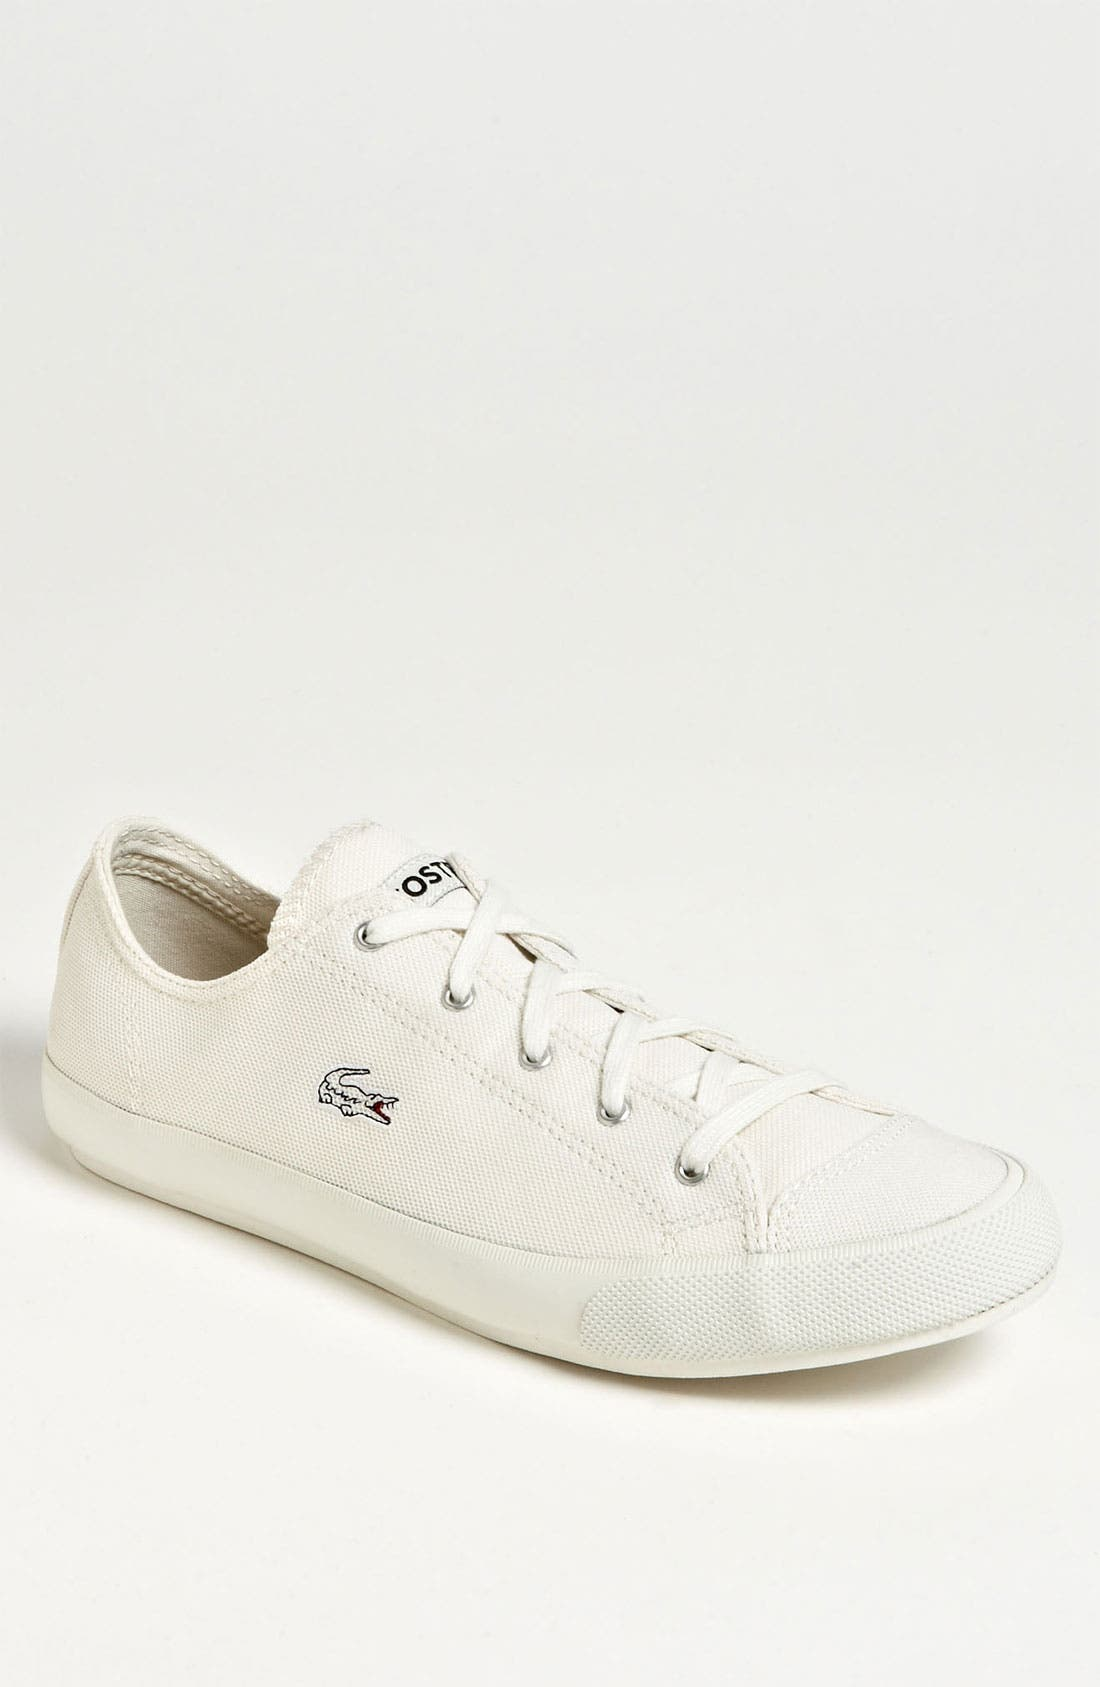 Alternate Image 1 Selected - Lacoste 'Fairburn' Sneaker